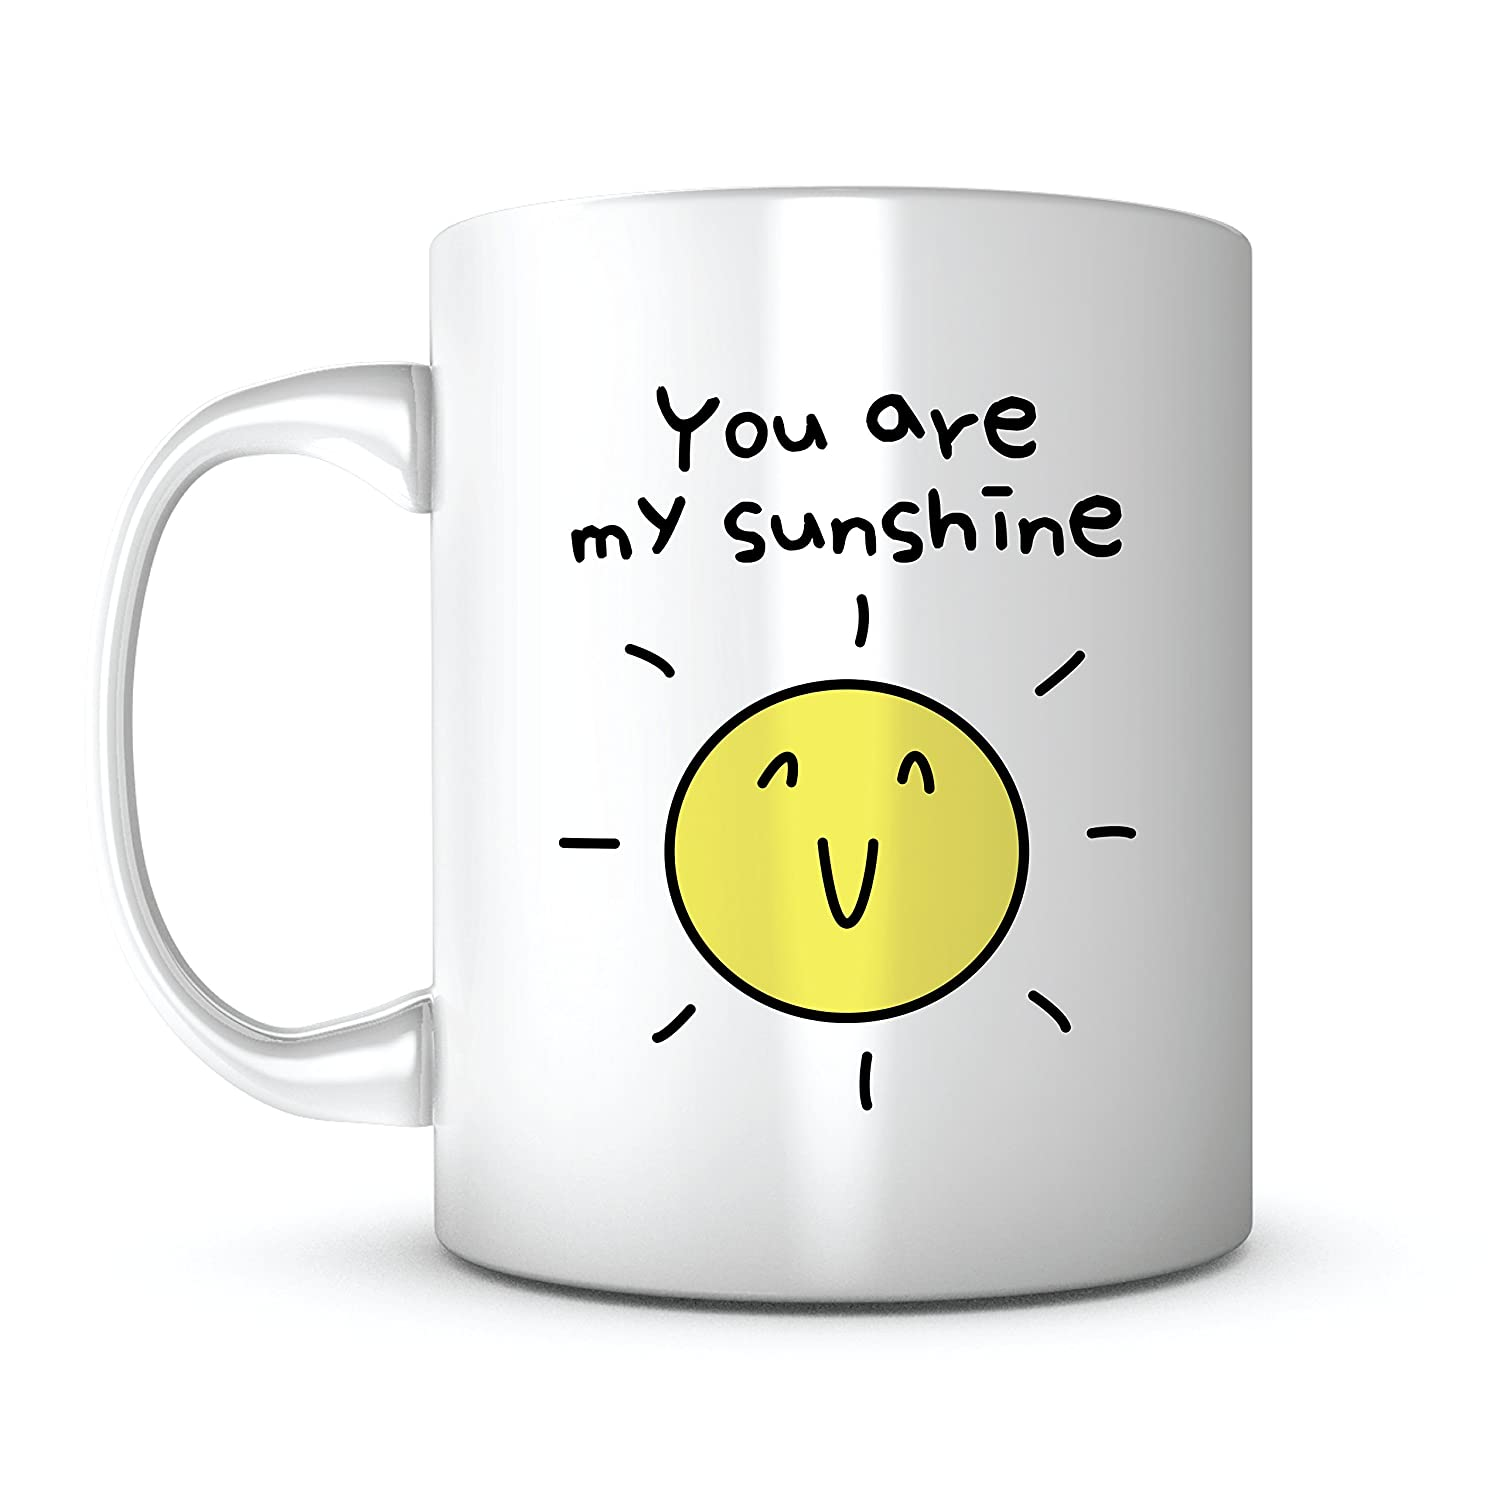 You Are My Sunshine-Gift Mug Ideas Coffee Mug Quotes Sayings for Valentines Day/Mother's Day/Father's Day/Birthday Gift/Friends/Coworker/Men/Girlfriend/Boyfriend/Ceramic 11OZ Personalized Tea Mug (1) Print Supremacy